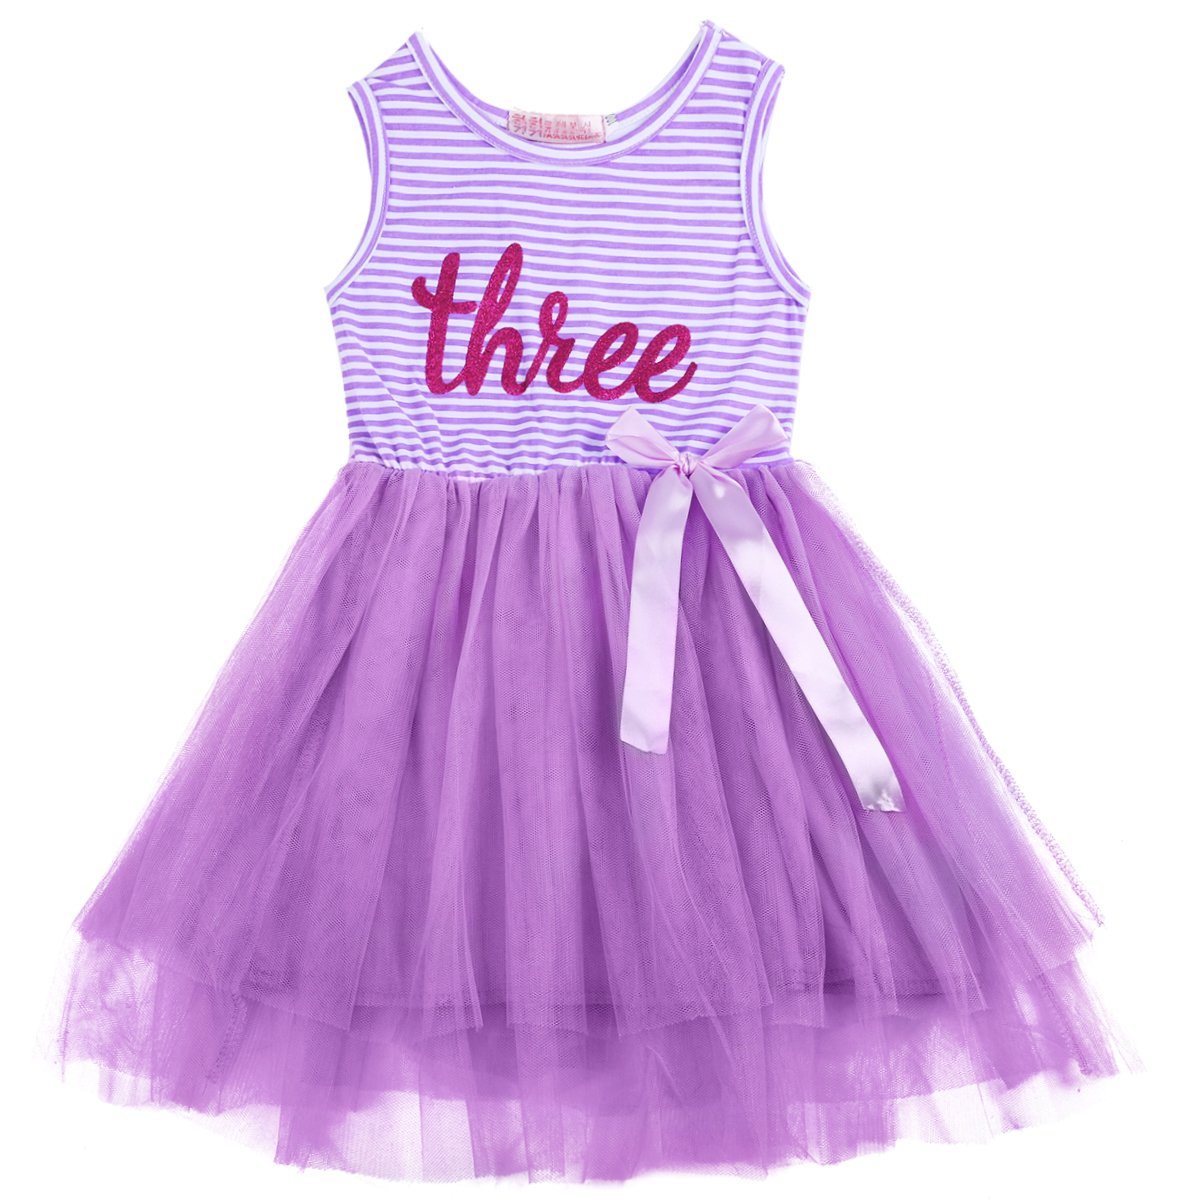 Newborn Baby Infant Toddler Girls Sleeveless Shinny Printed Crown 1st//2nd//3rd Birthday Dress Cake Smash Striped Tulle Tutu Skirt Party Outfit Bow Tie Dresses Princess Outfit For Kids 1-3 Years